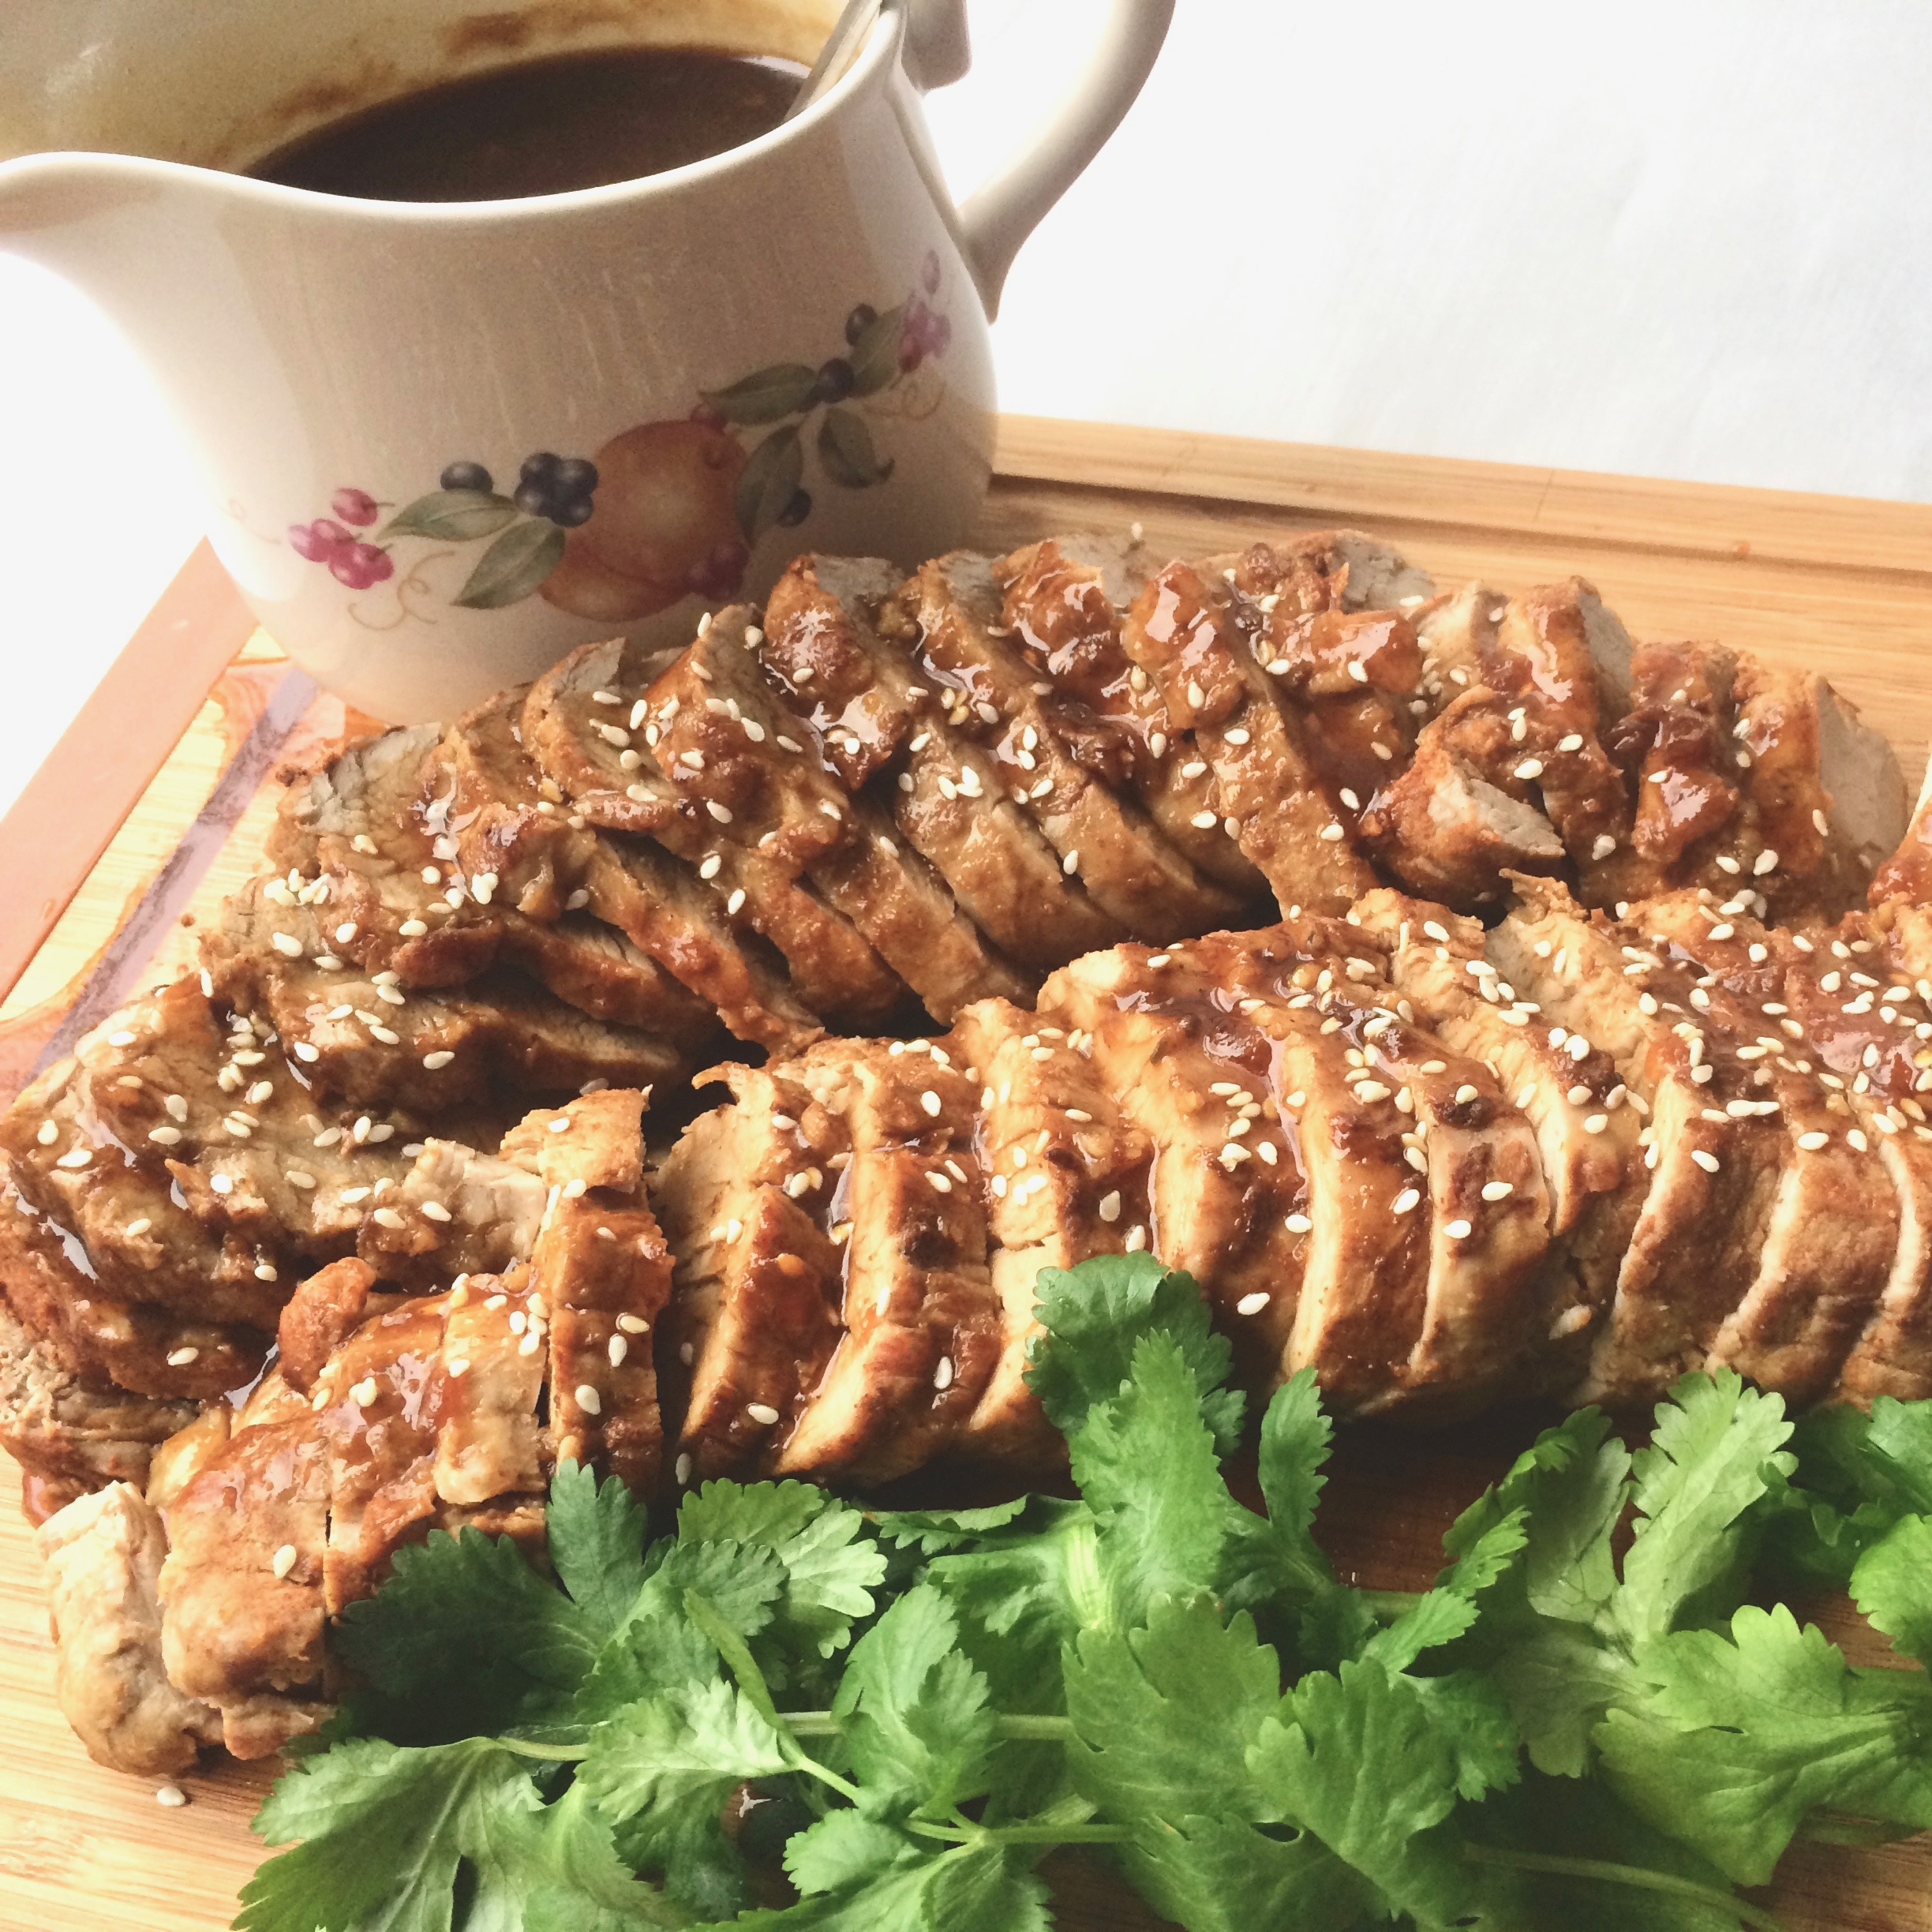 "Spice-rubbed tenderloins cook in mere minutes in the Instant Pot! You'll finish with an Asian-inspired glaze that's spicy and sweet. ""This recipe comes together in a snap, and it all cooks in the Instant Pot!"" says Bibi."